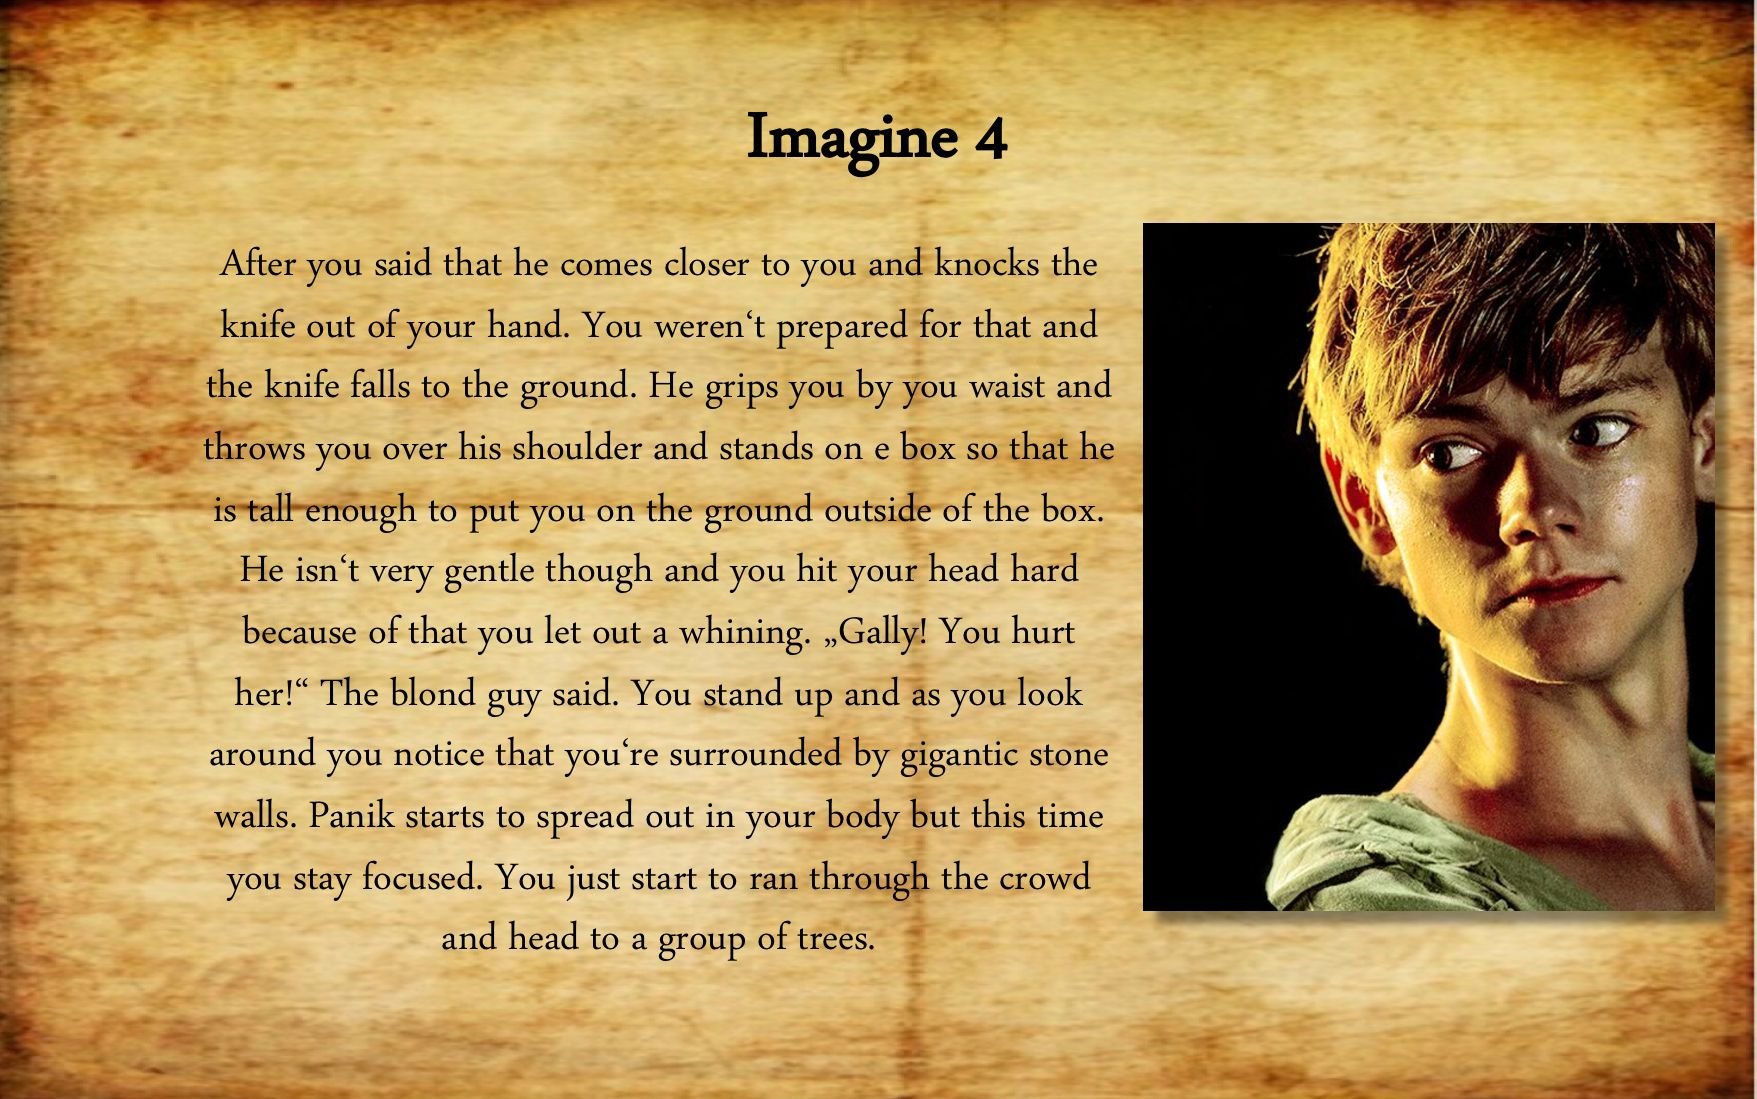 Pin by Kat Smith on Imagine Maze runner imagines, Maze